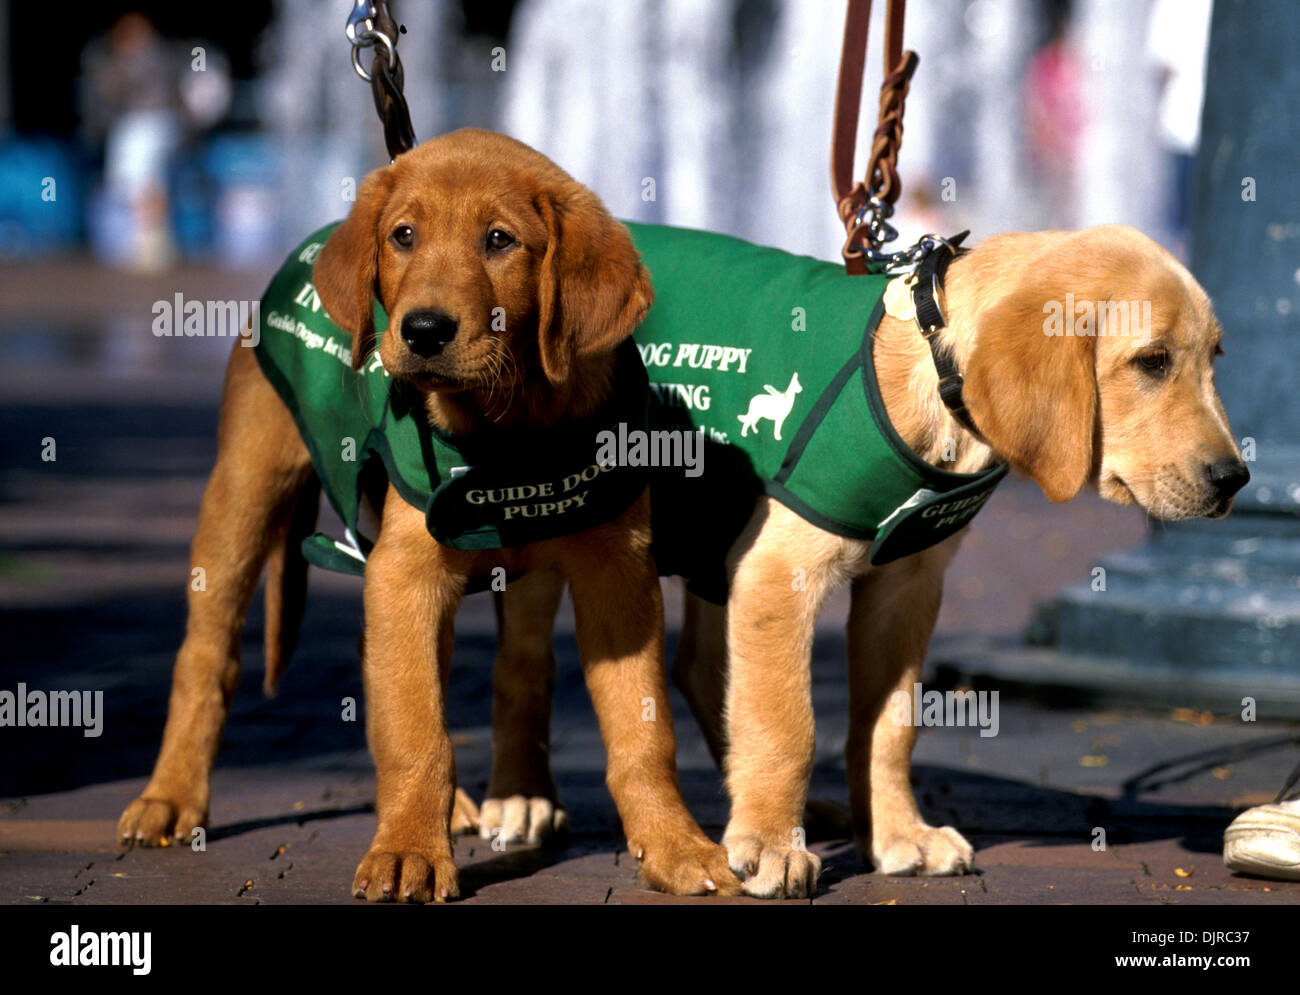 Guide Dog Training Stock Photos & Guide Dog Training Stock Images